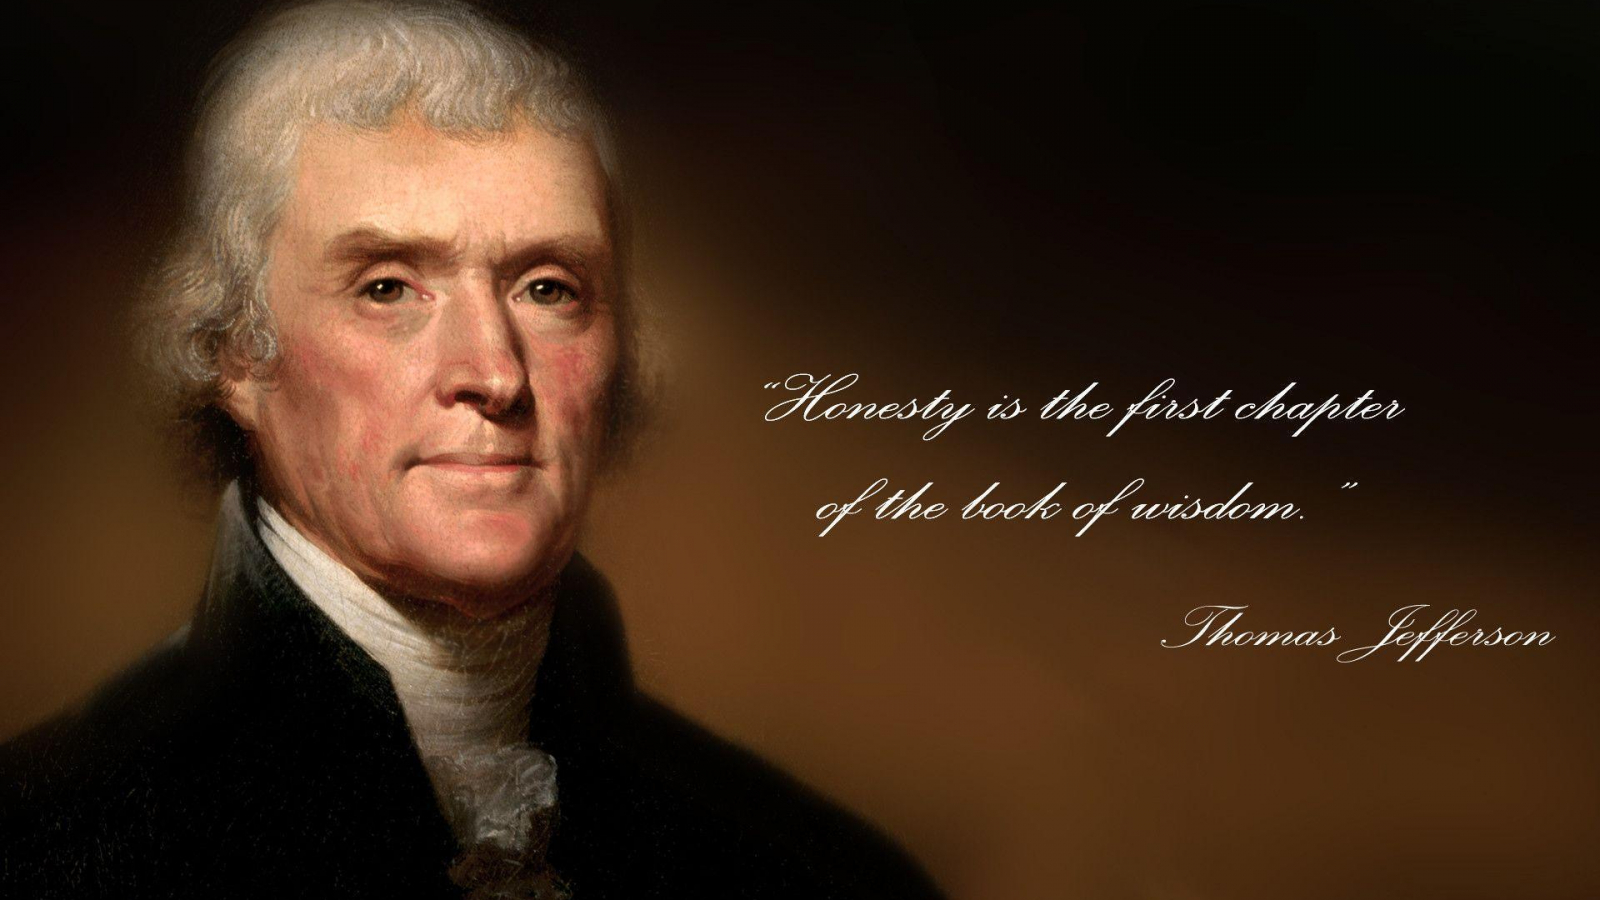 an analysis of the life liberty and the pursuit of happiness by thomas jefferson in regards to the e When stated in this order, the first 3 rights (life, liberty and the pursuit of happiness) then become reason and support for the last right when the first three are broken, the fourth becomes more important.